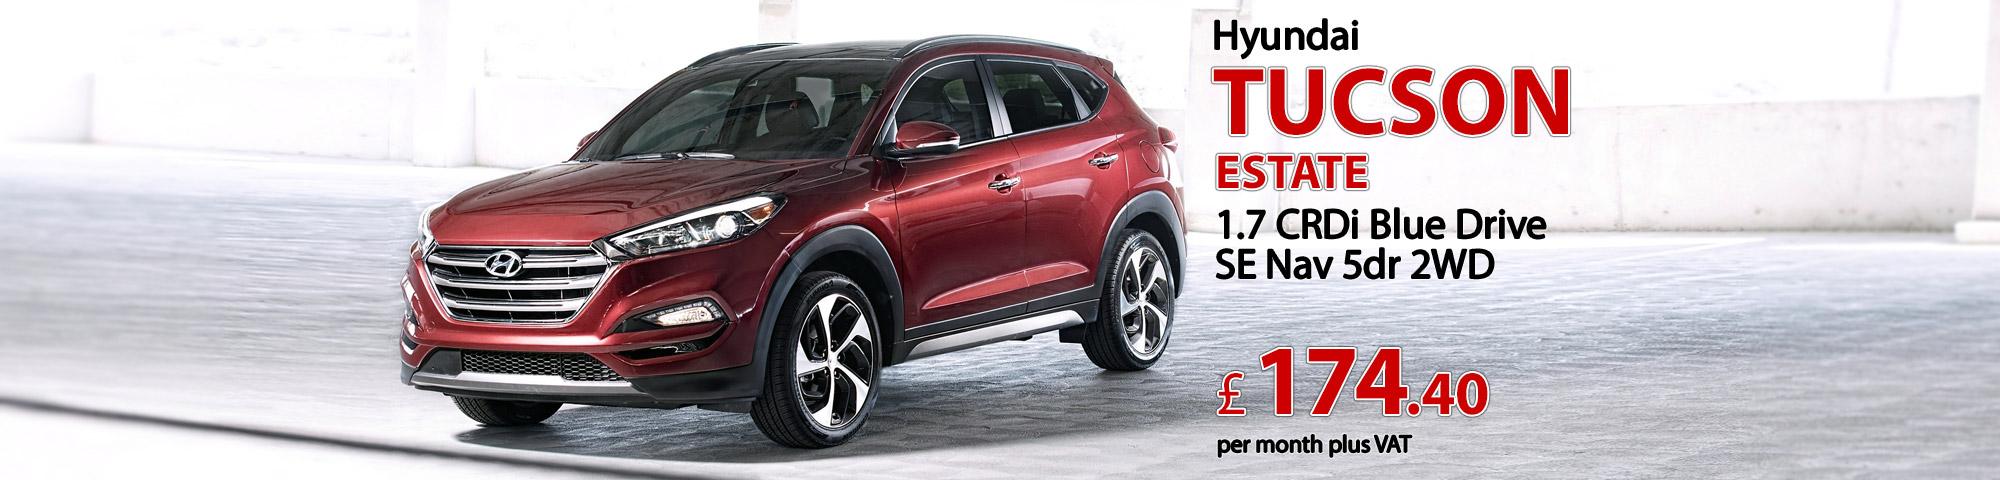 dealer london tucson pre htm suv vehicles featured owned groton connecticut new cpo near se ct sales certified hyundai